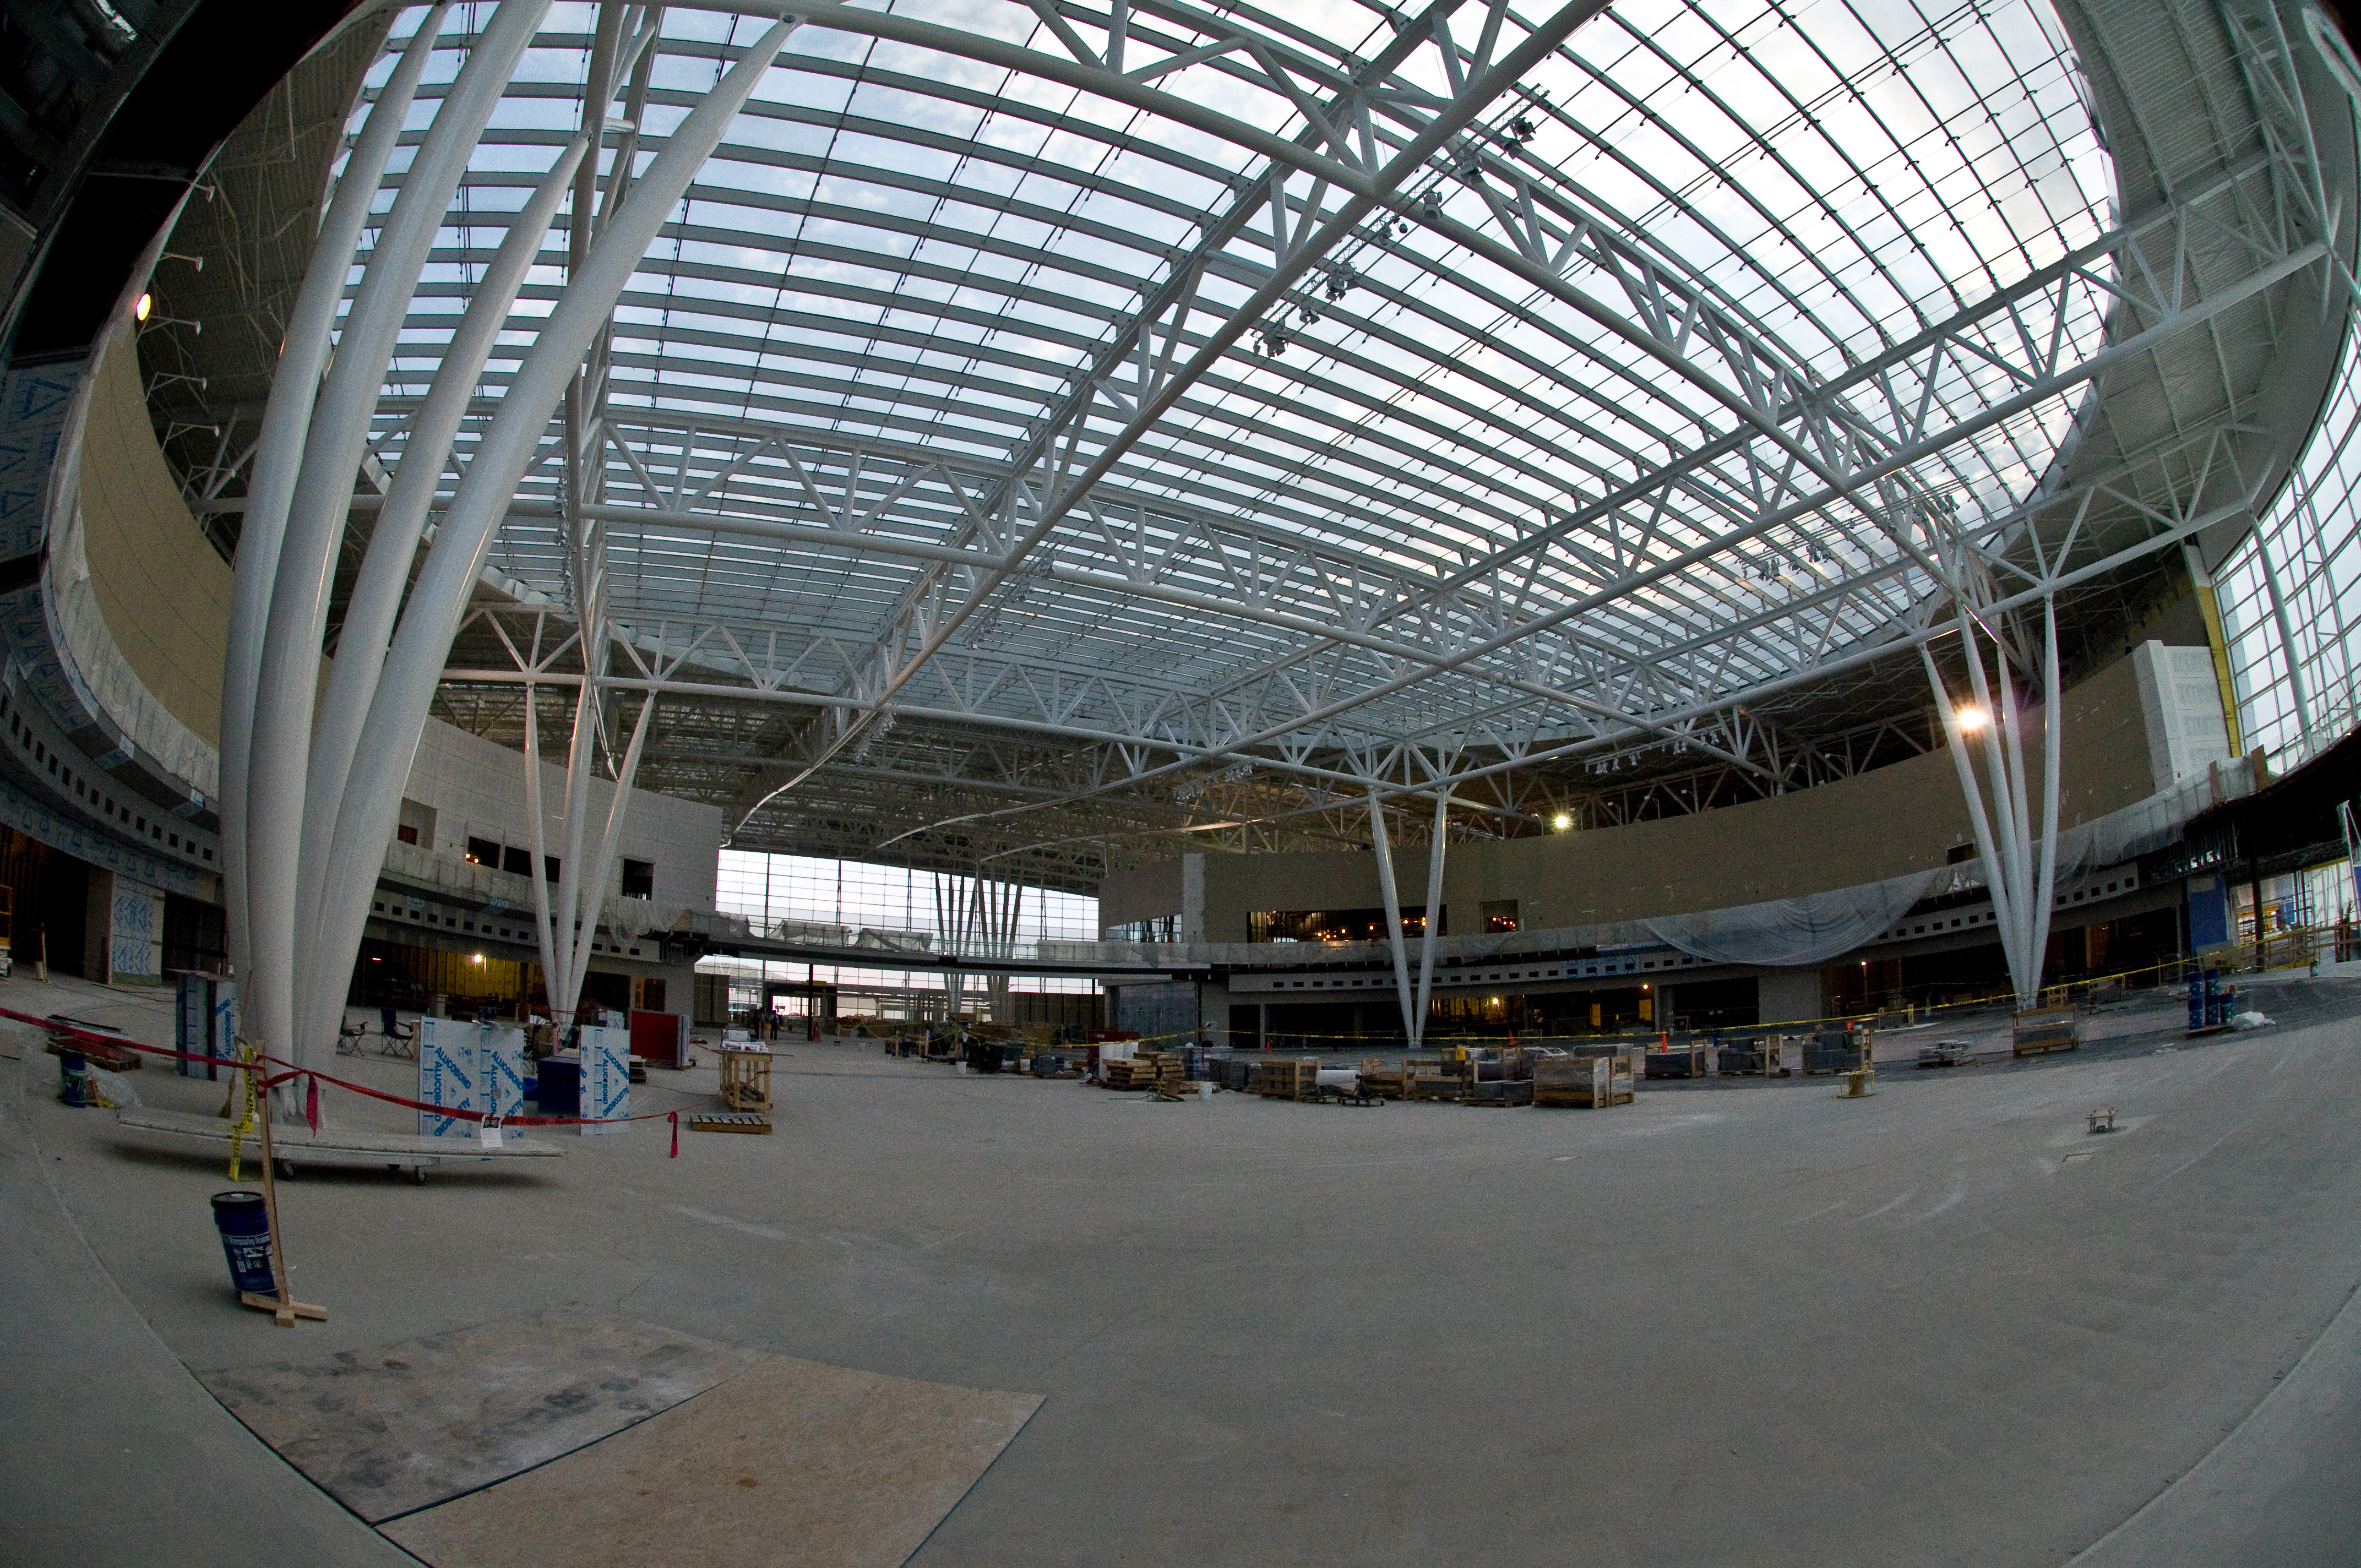 File:New Indianapolis Airport - IND - Flickr - hyku (4).jpg - Wikimedia Commons